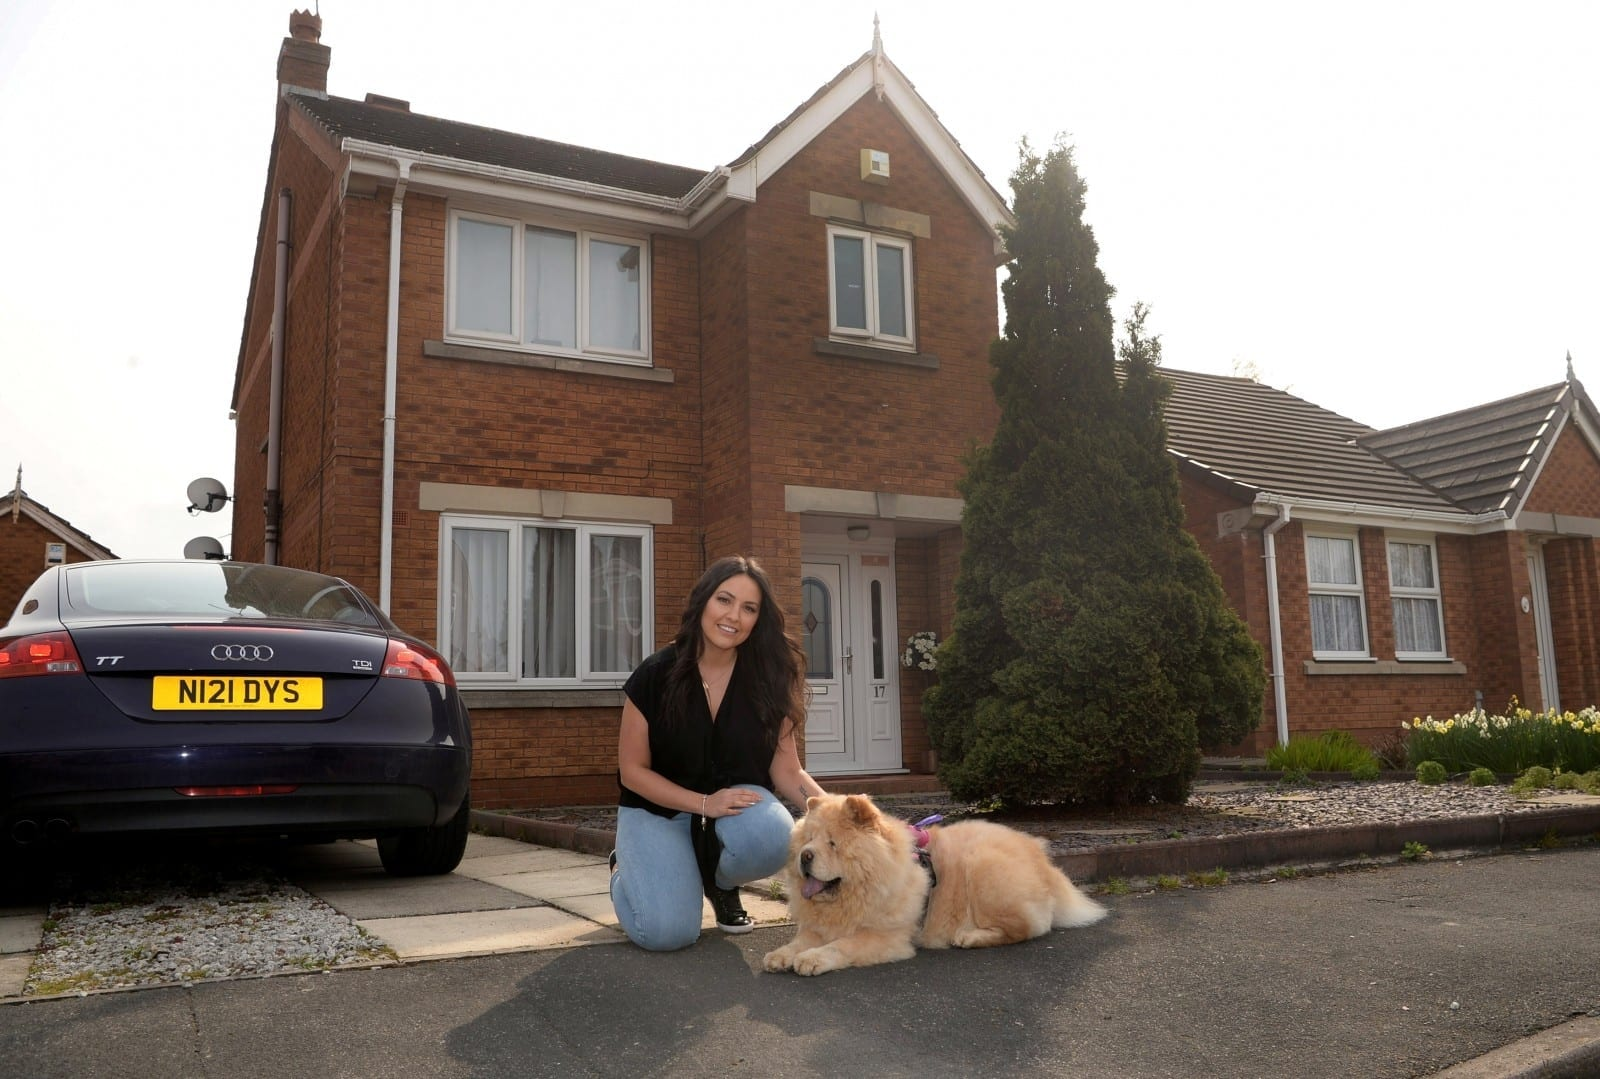 Woman Is Remortgaging Her Home To Raise £20K For Life-Saving Treatment - For Her DOG